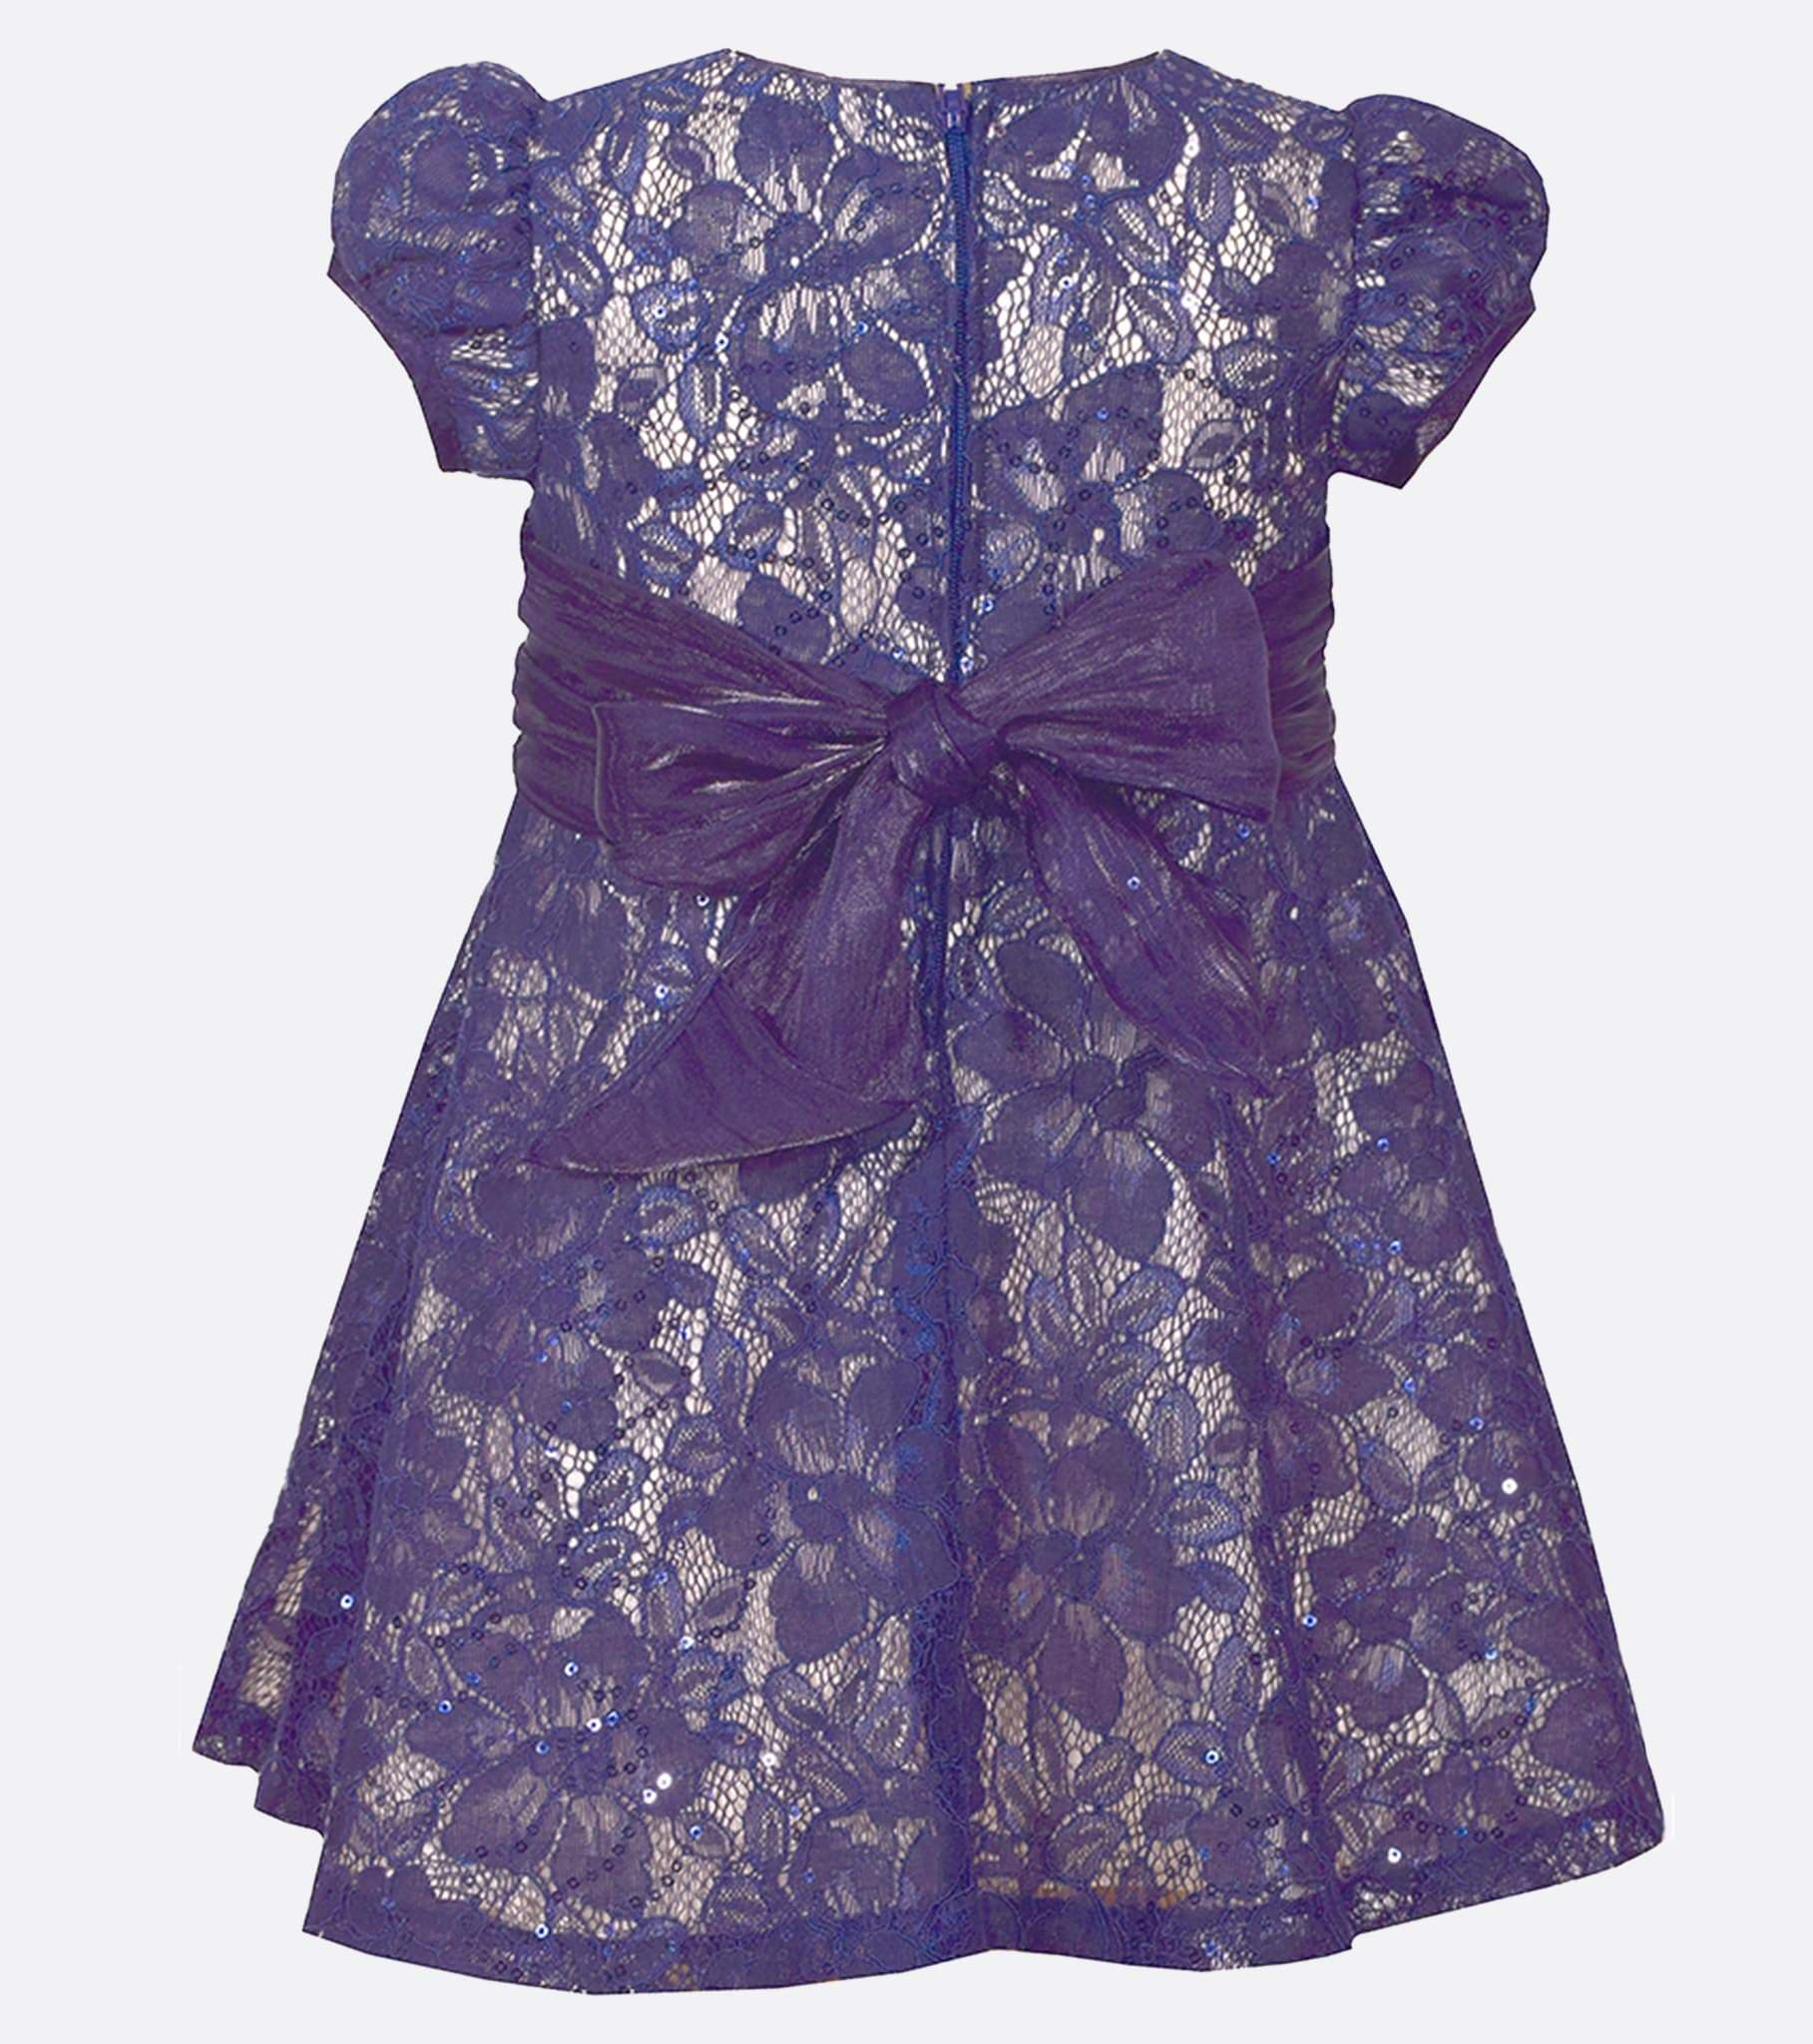 Cap Sleeved Lace   Polly Dress - Bonnie Jean